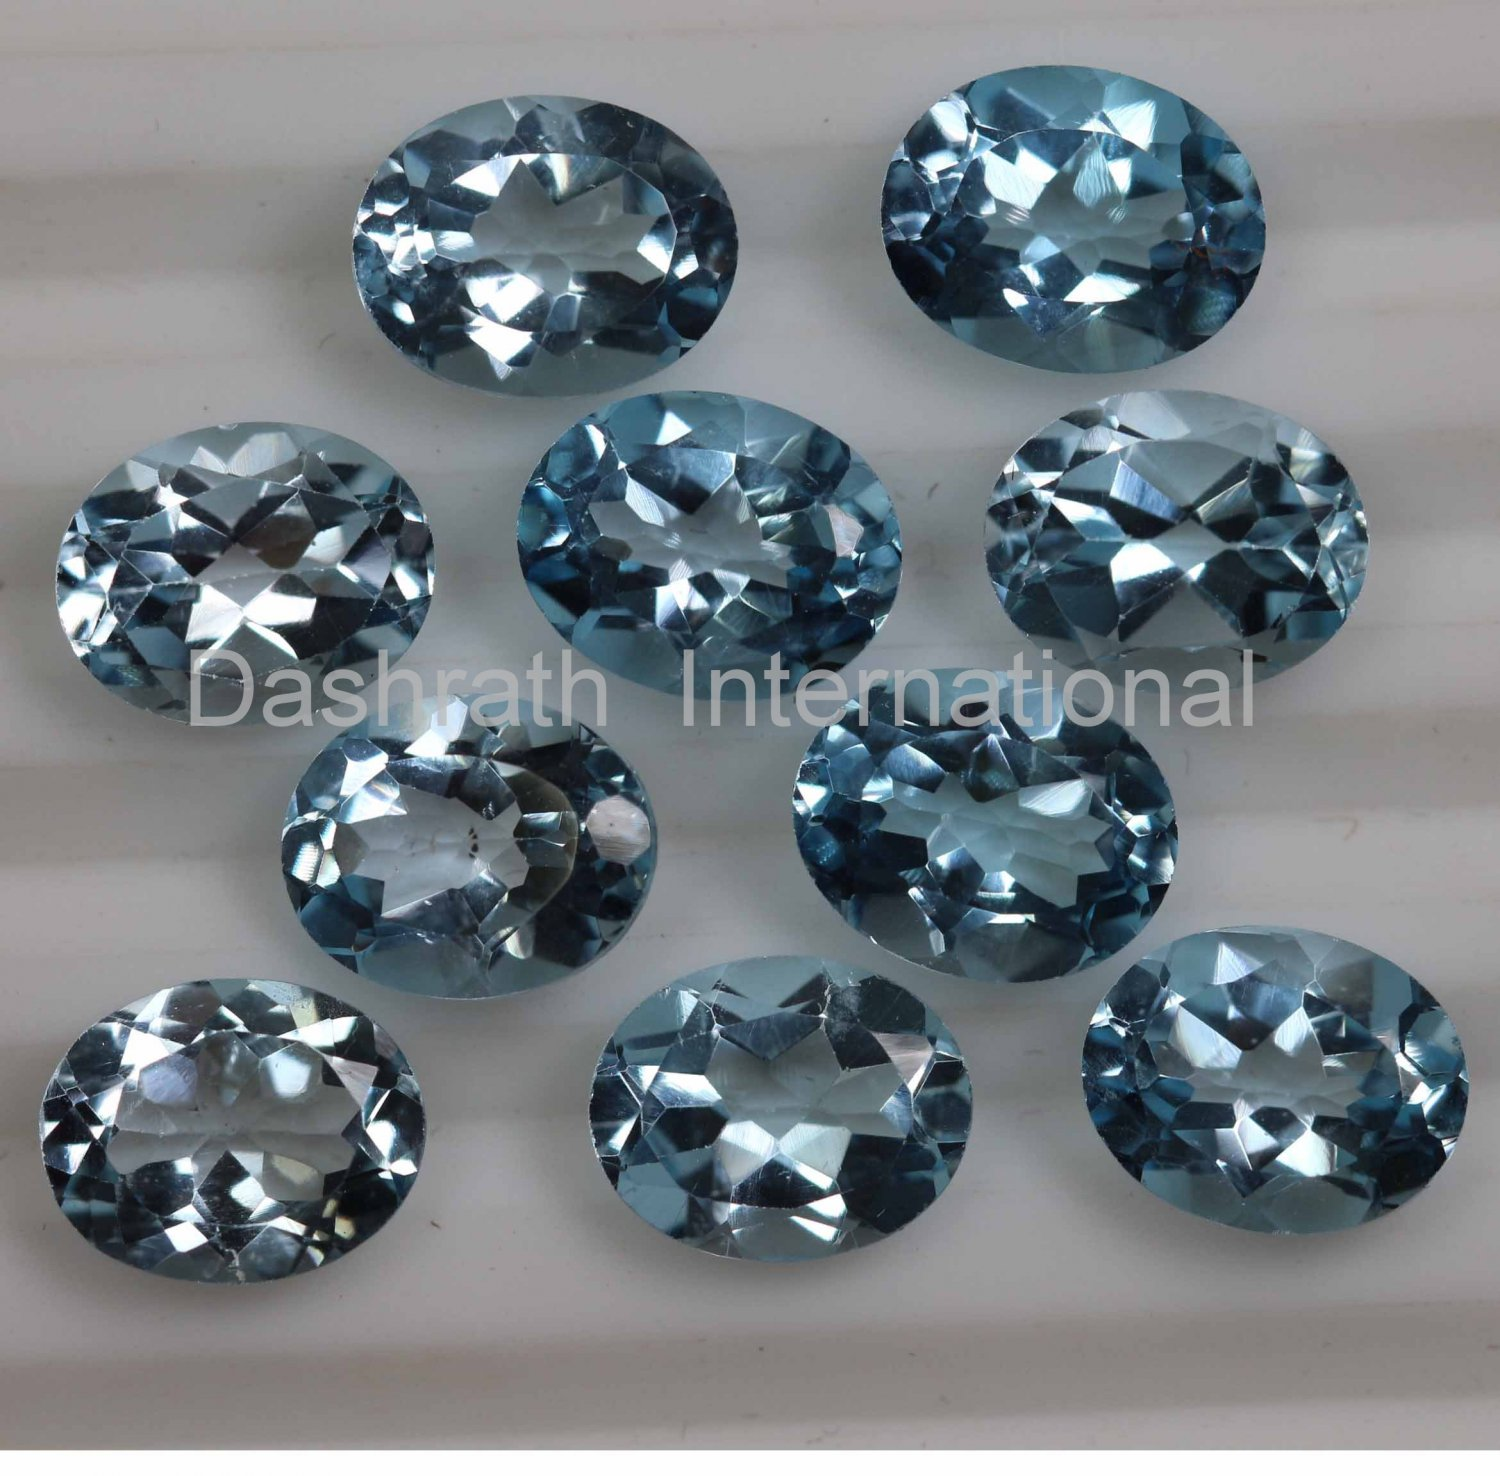 8x6mm  Natural Sky Blue Topaz Faceted Cut Oval 2 Piece (1 Pair )  Top Quality Loose Gemstone